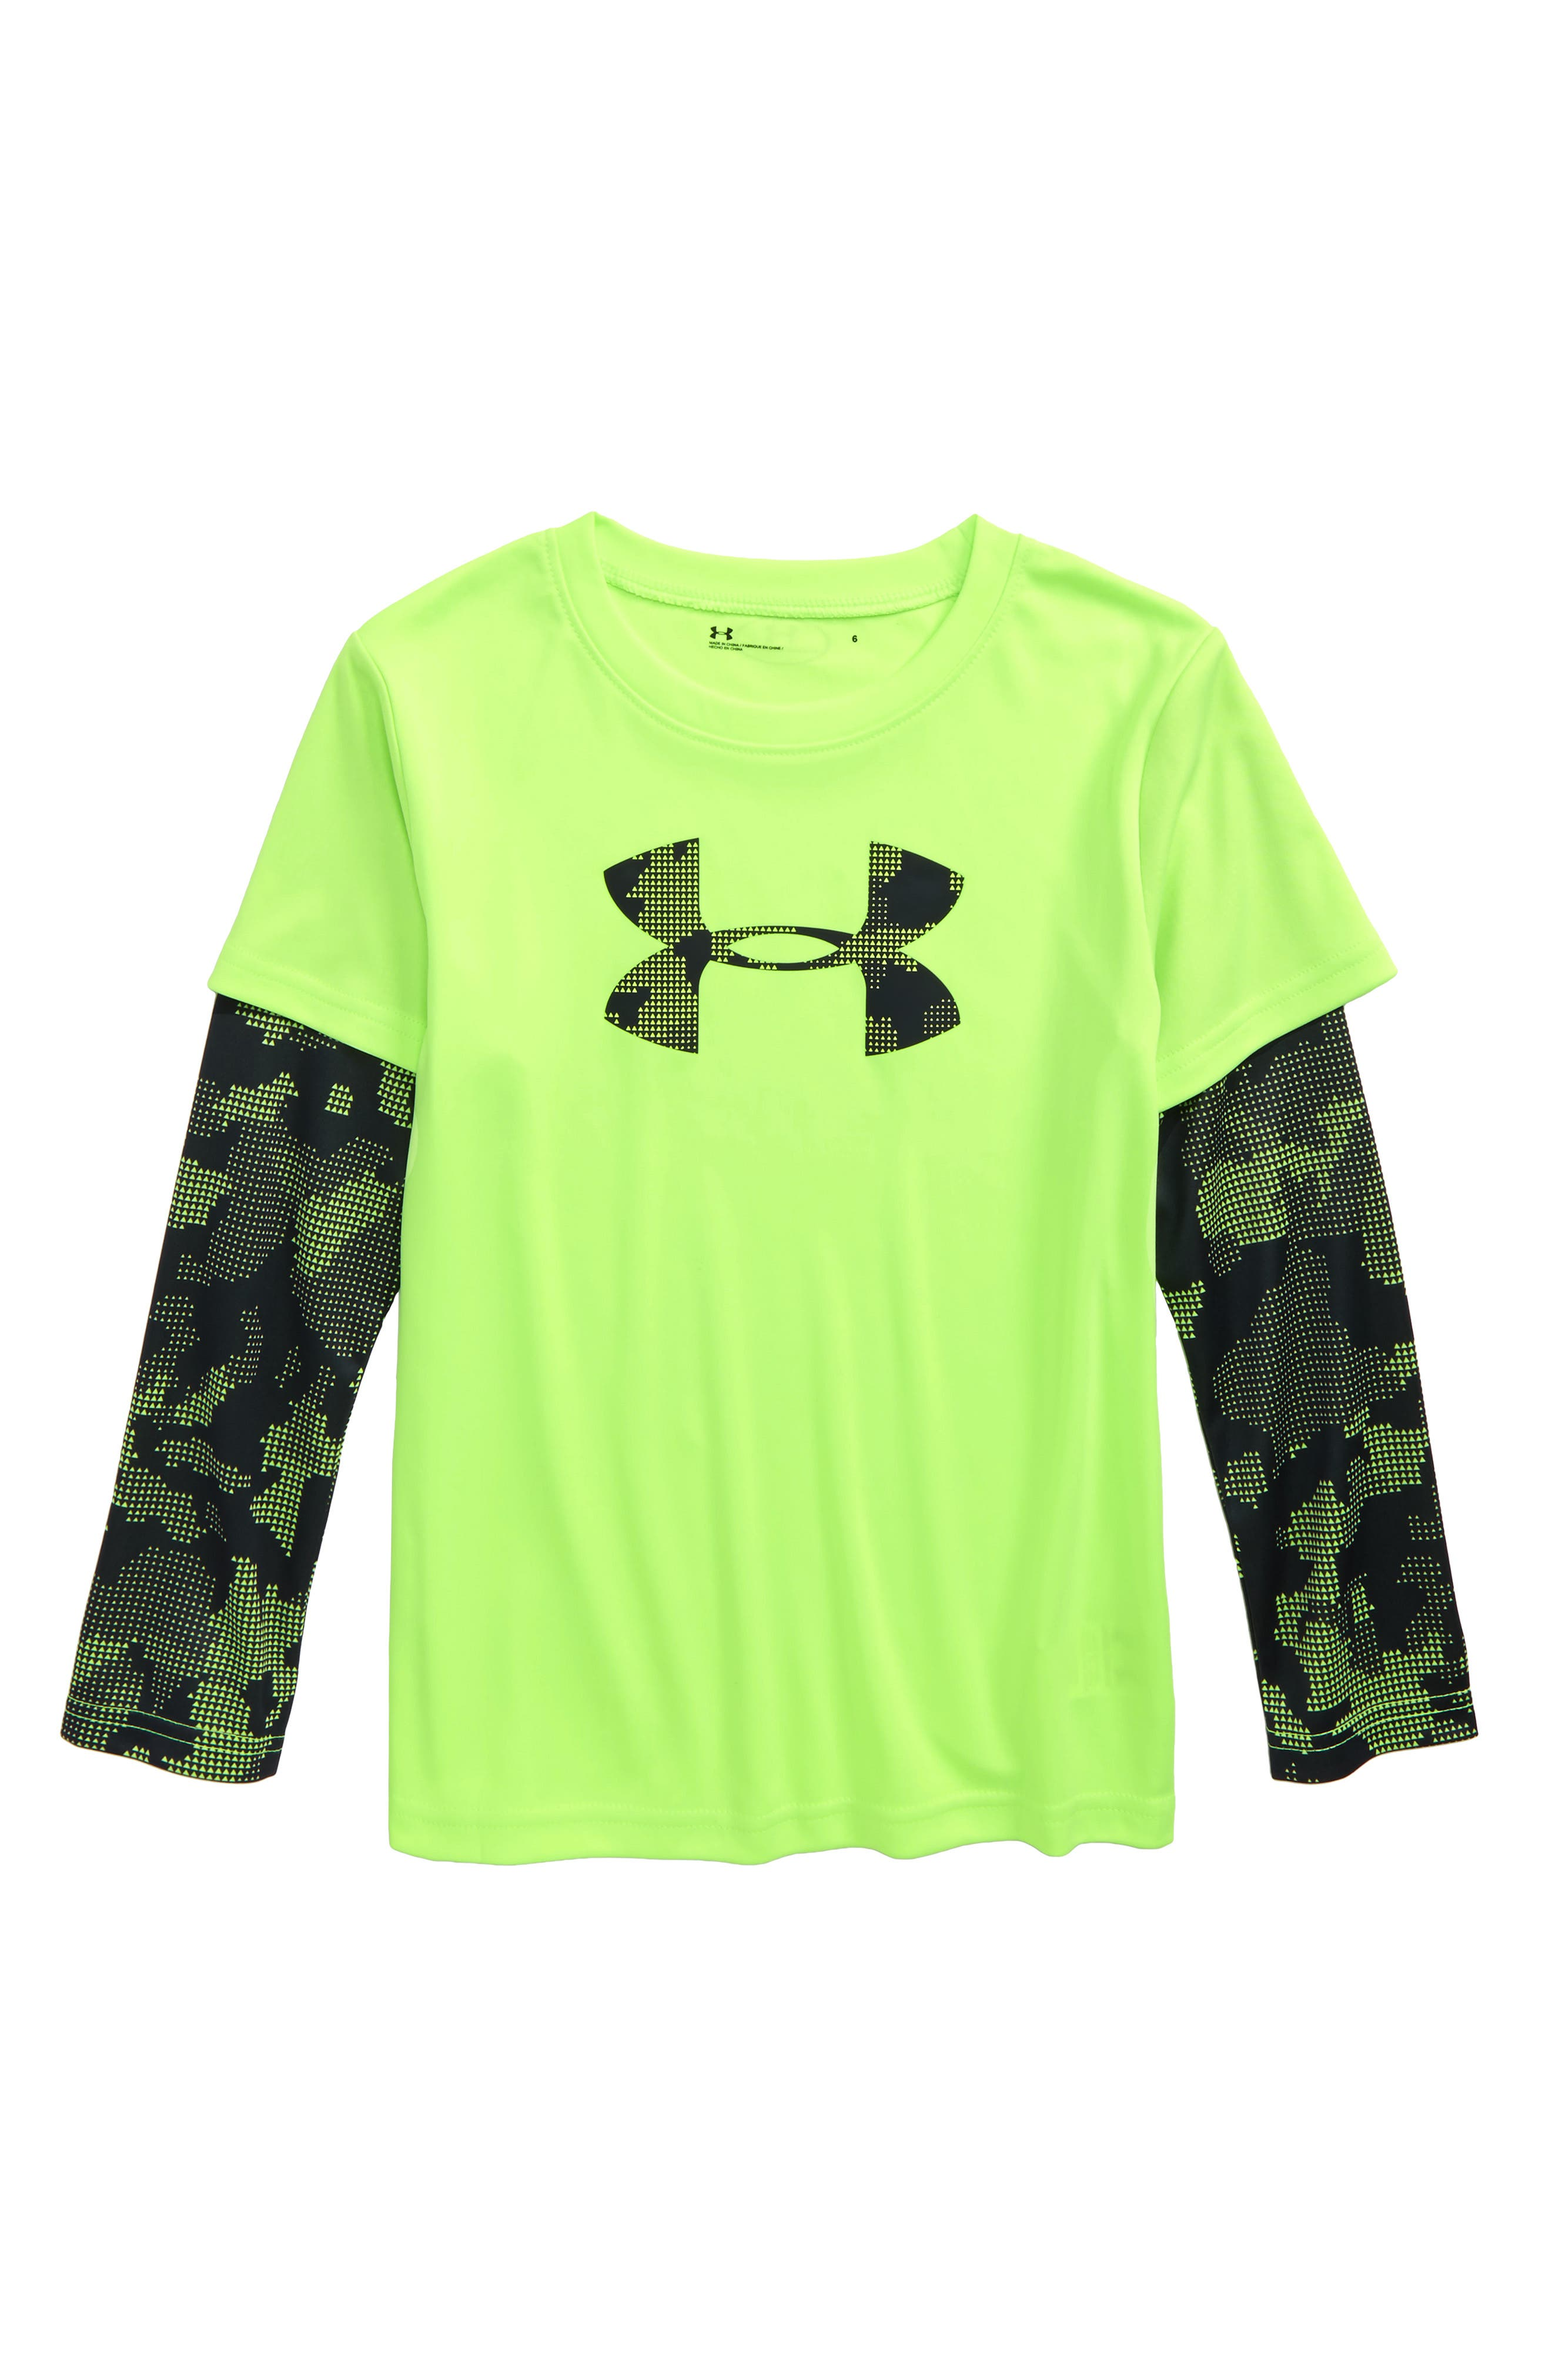 Under Armour Utility Layered Long Sleeve T-Shirt (Toddler Boys & Little Boys)